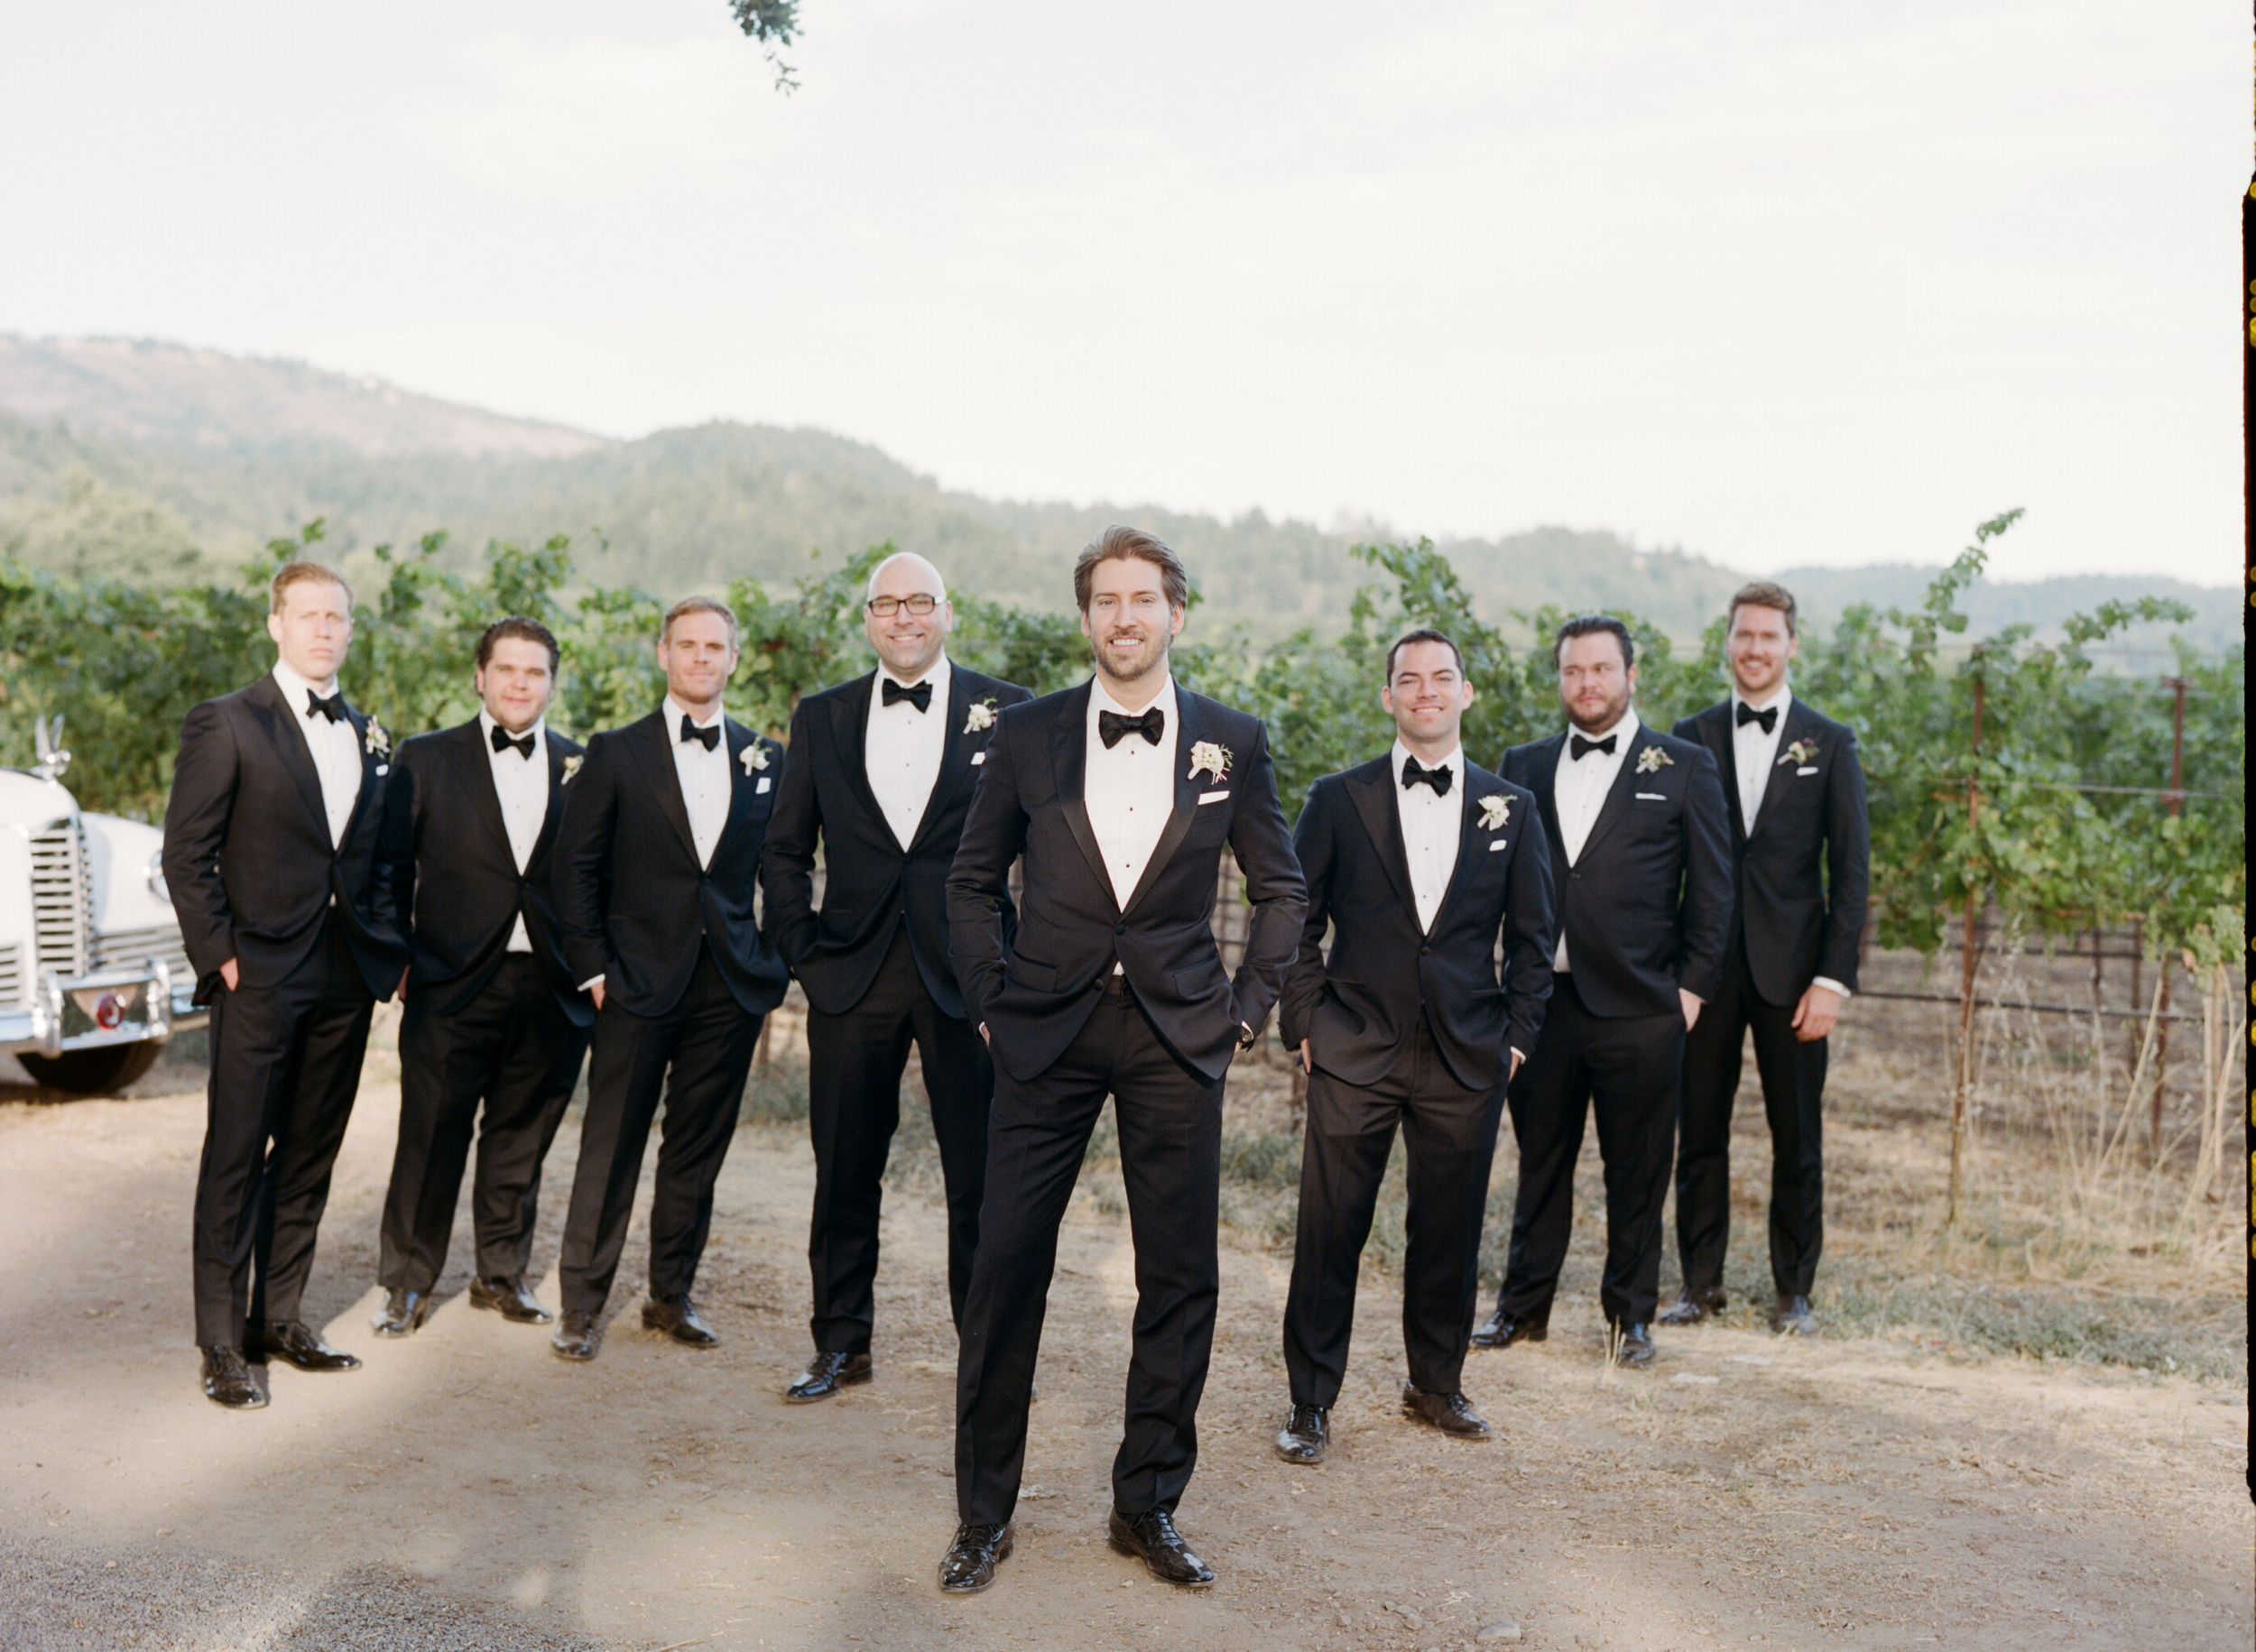 Michael poses with his groomsmen, all handsome in black tuxedos; photo by Sylvie Gil